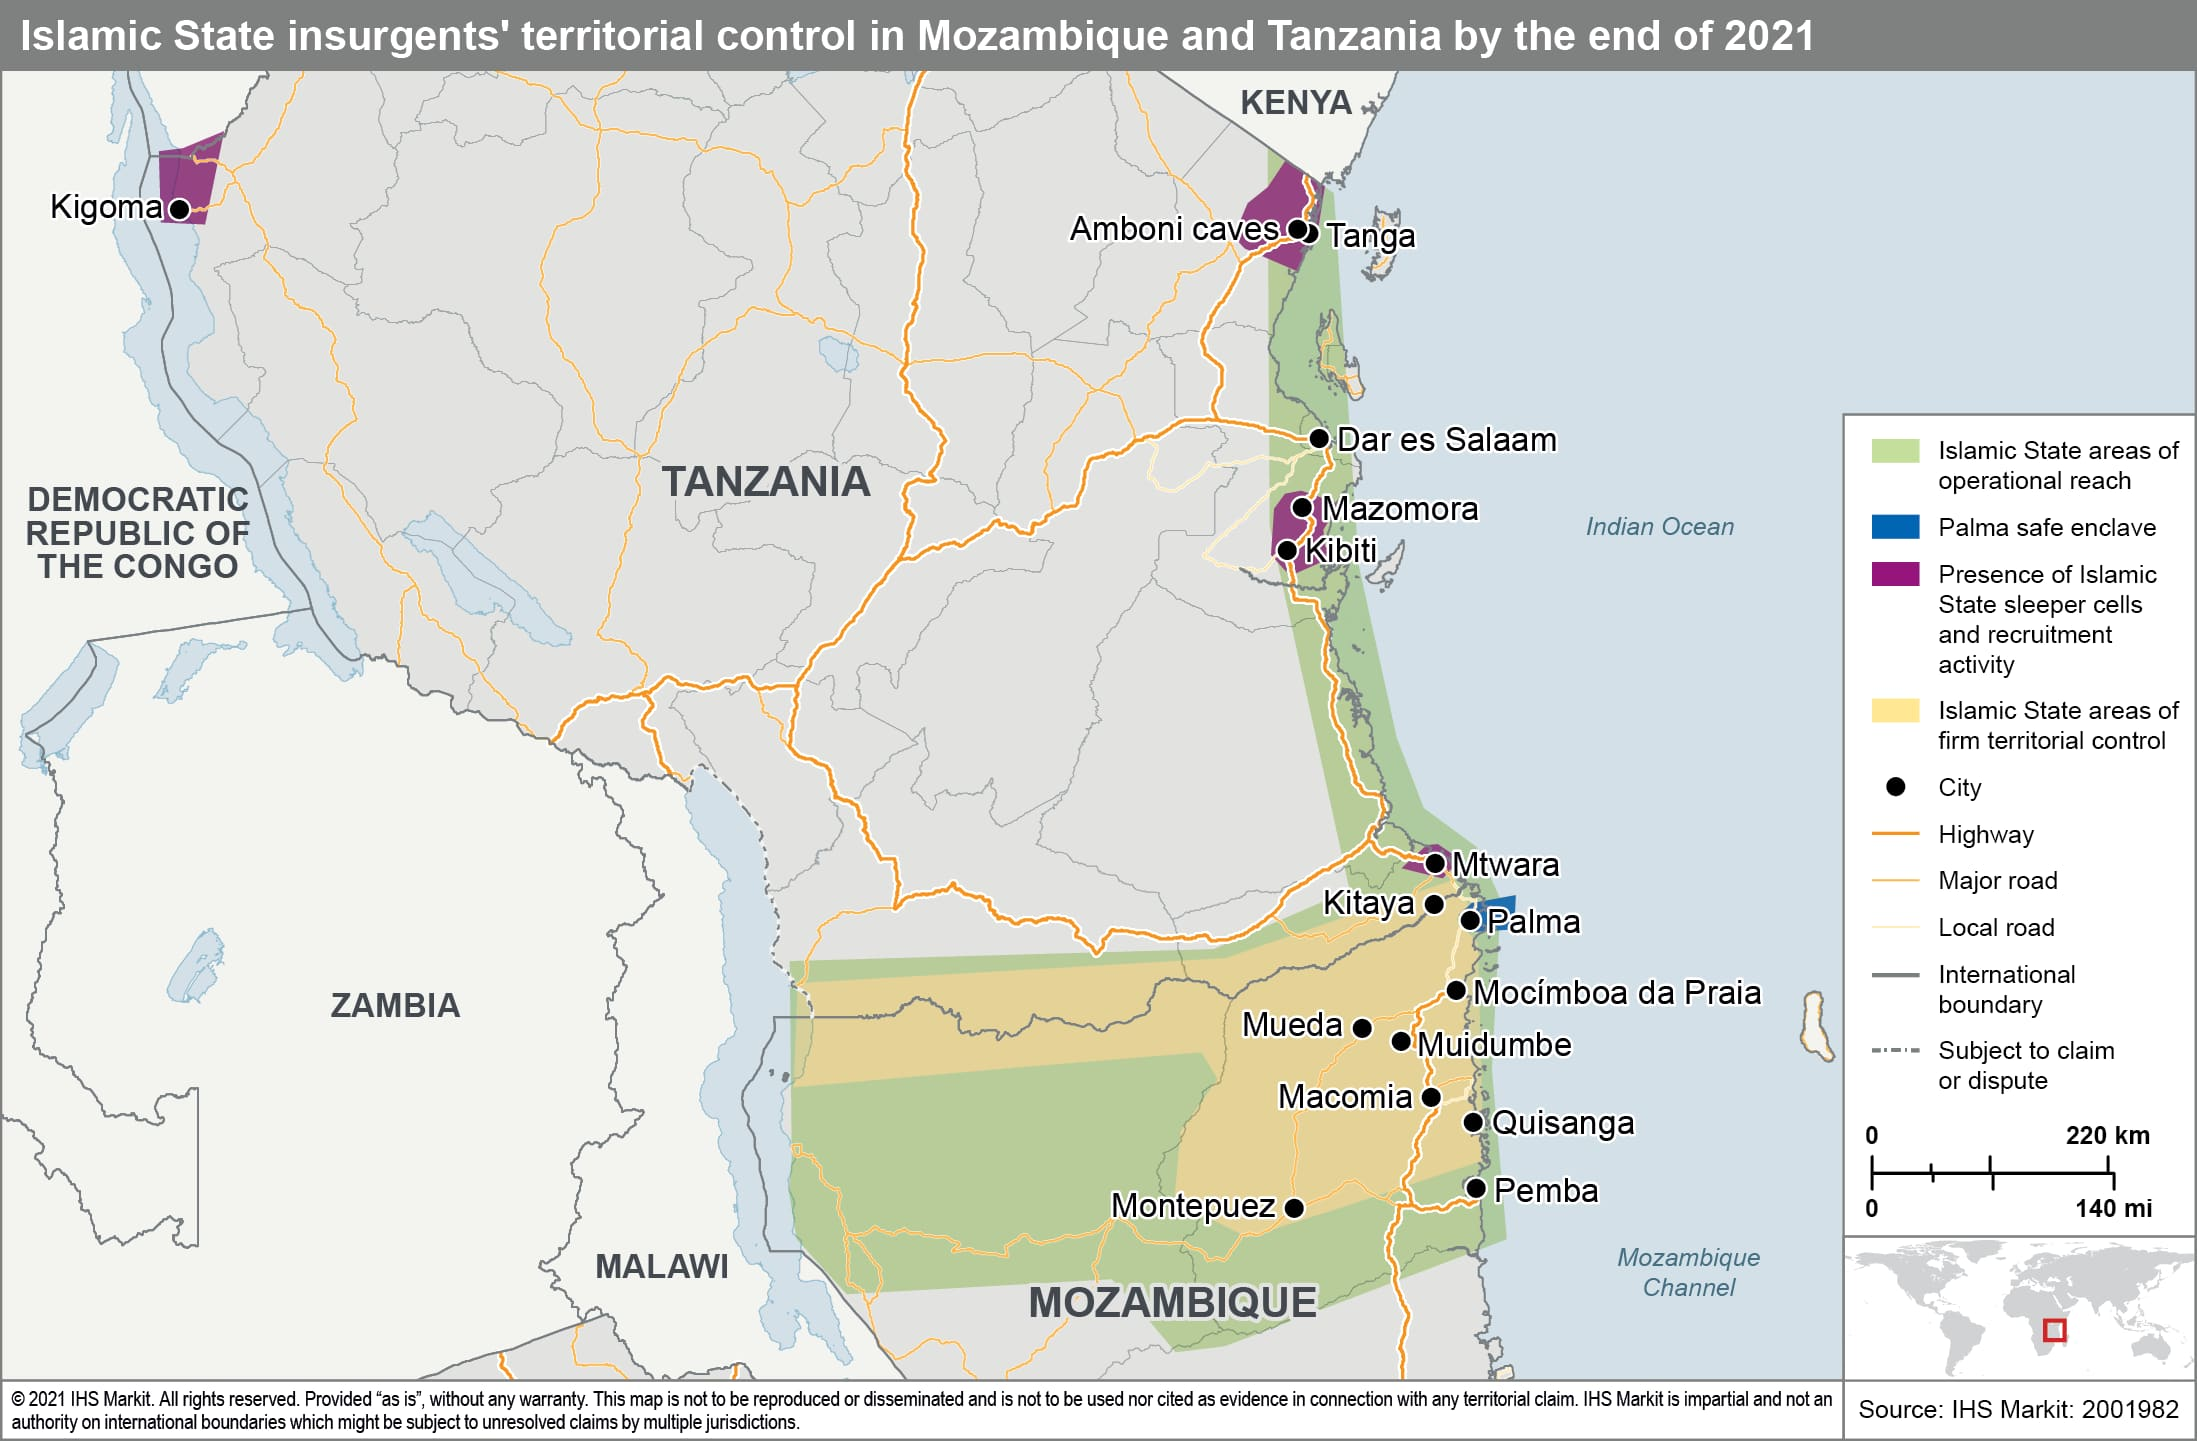 Islamic State insurgents territorial control in Mozambique and Tanzania by the end of 2021